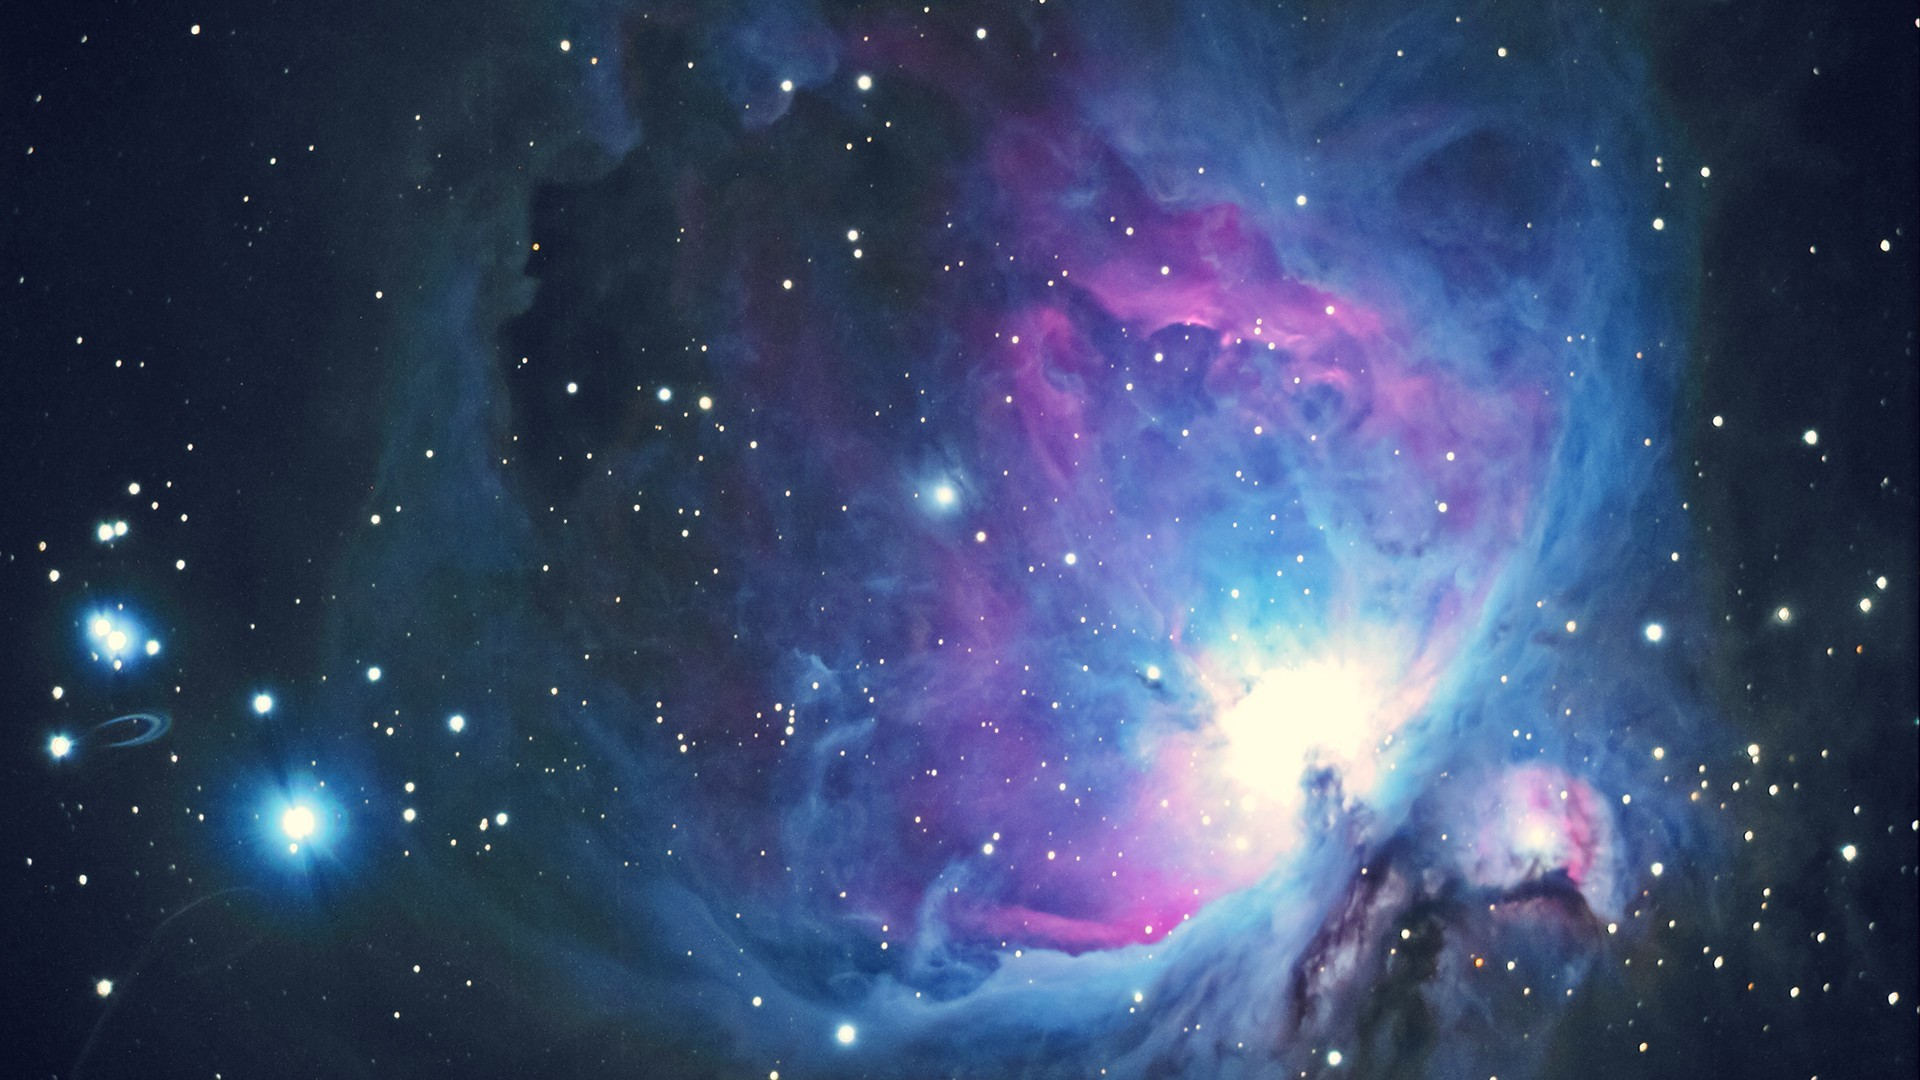 Space Wallpaper Cool Wallpapers Tumblr Wallpapers Cool: Cool Space Wallpapers